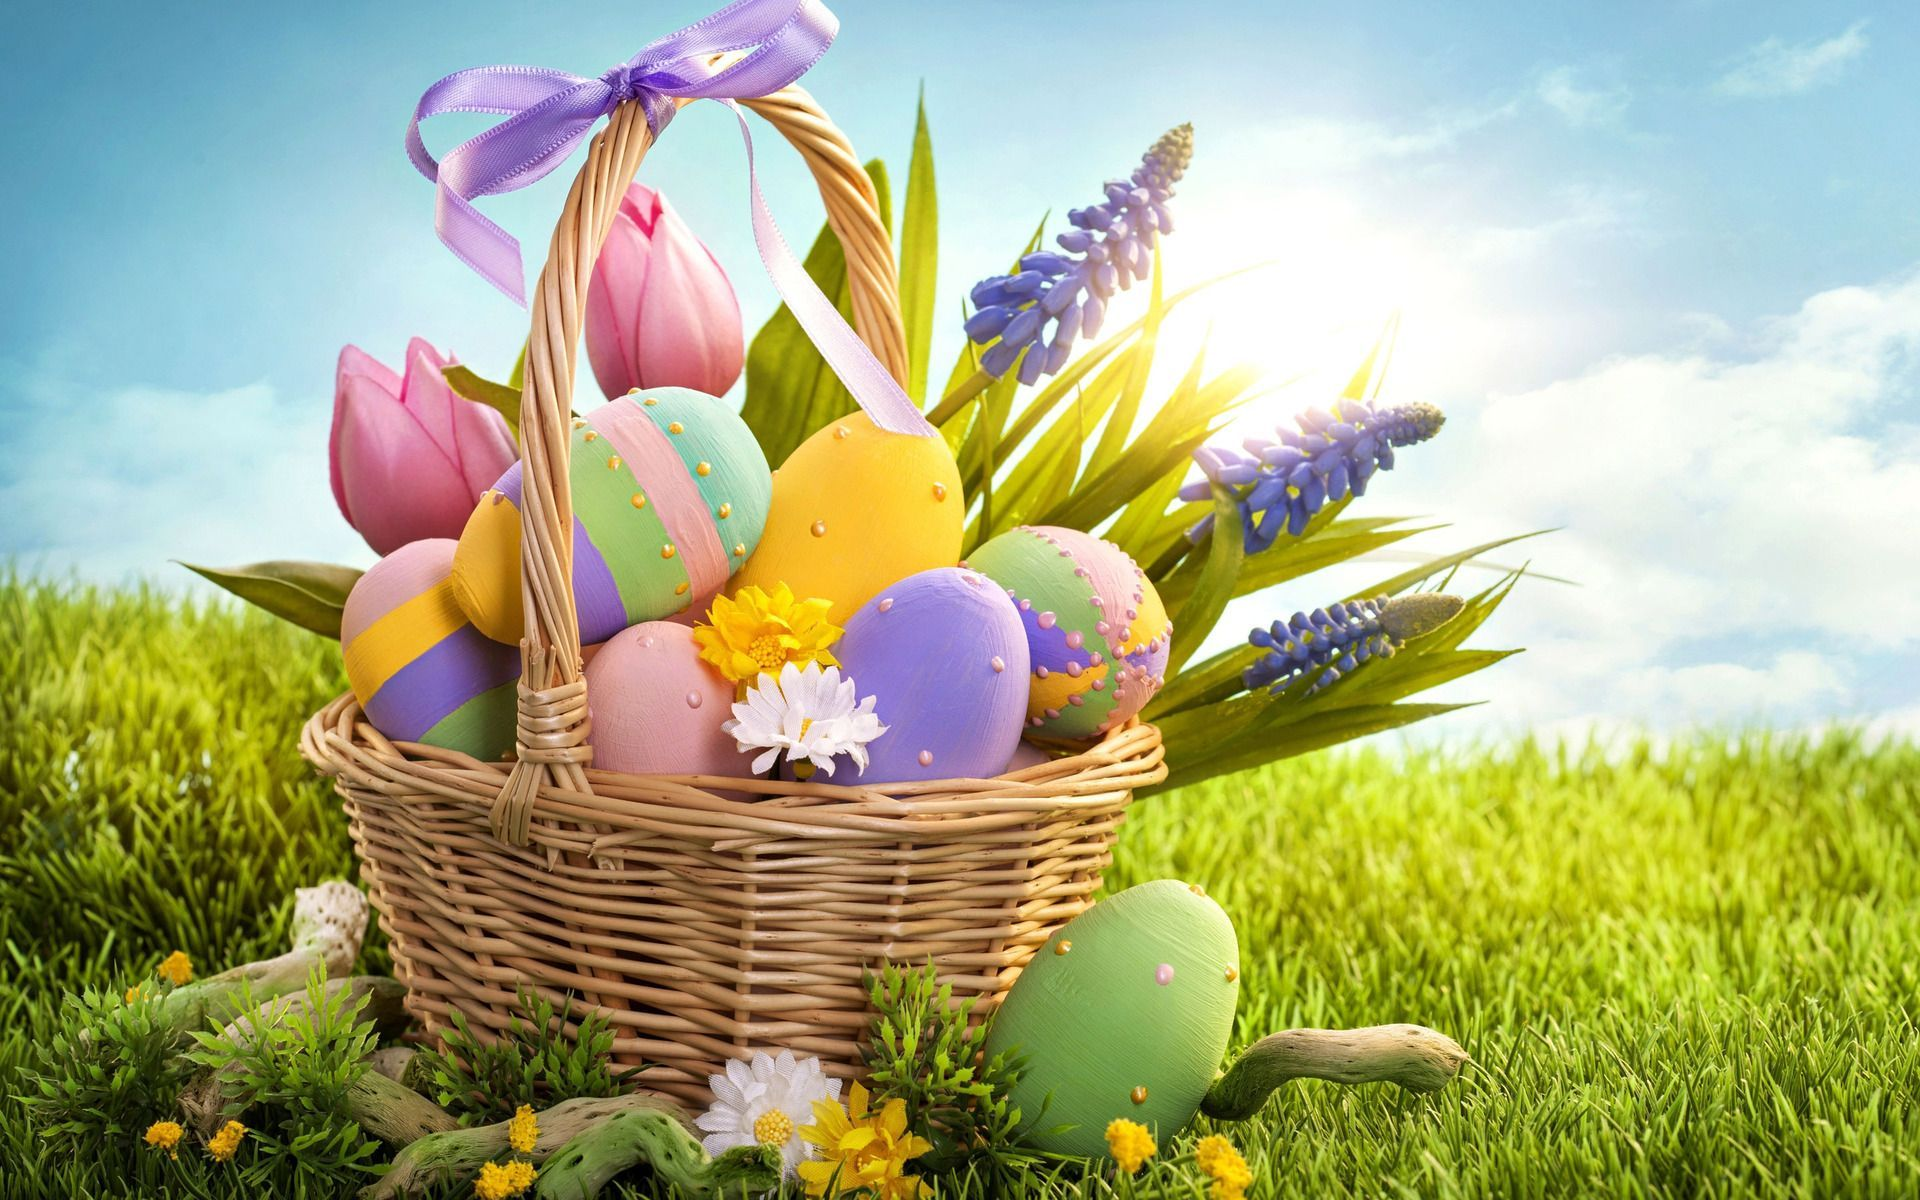 Easter screensavers holidays happy easter screensaver wallpaper easter screensavers holidays happy easter screensaver wallpaper 56163744 easter pinterest screensaver happy easter and easter kristyandbryce Image collections